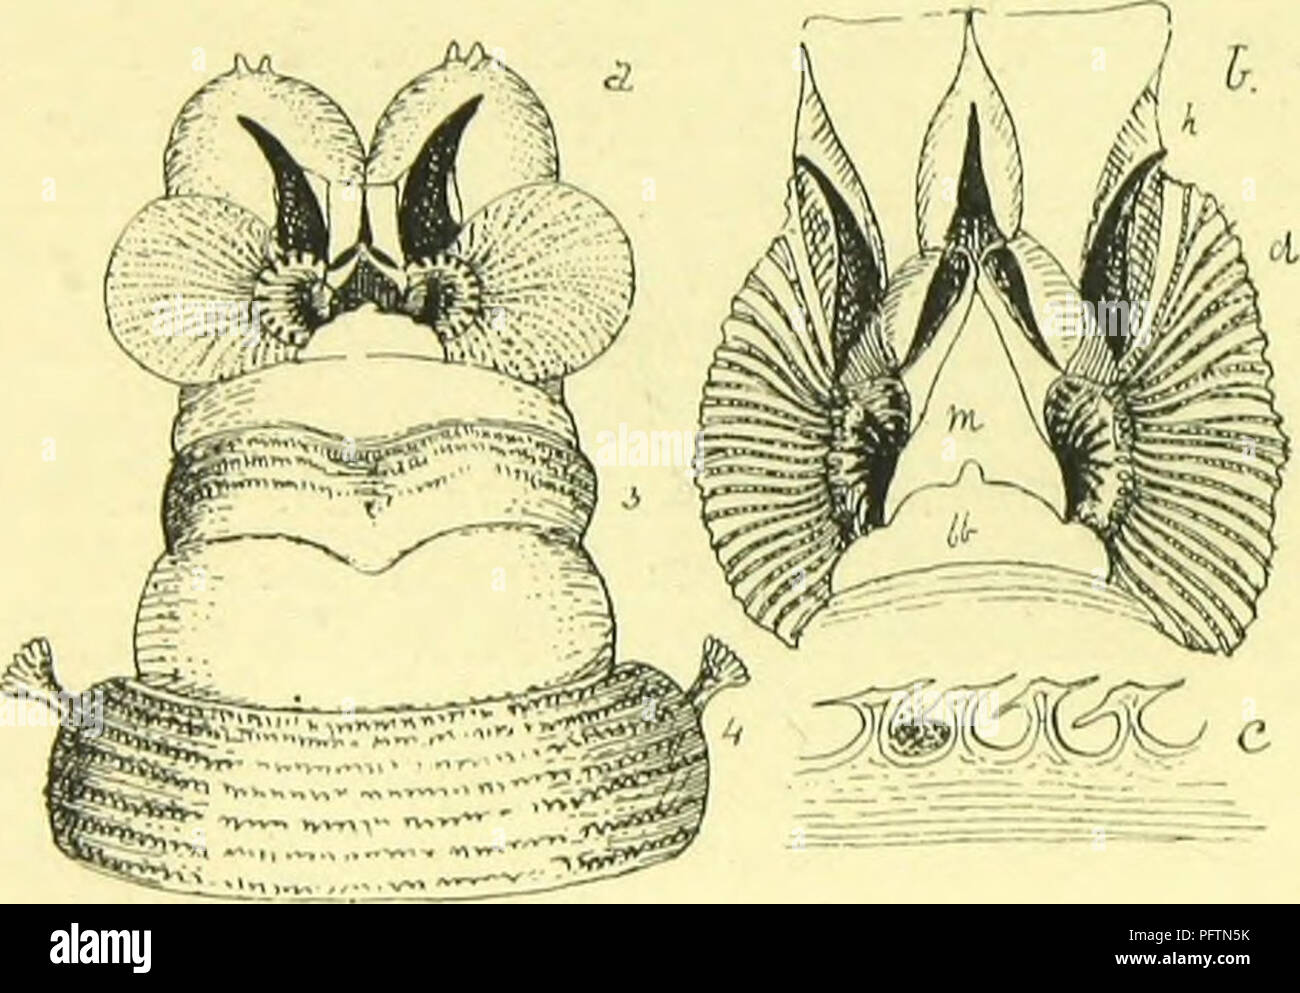 Conical Papillae Stock Photos & Conical Papillae Stock Images - Alamy